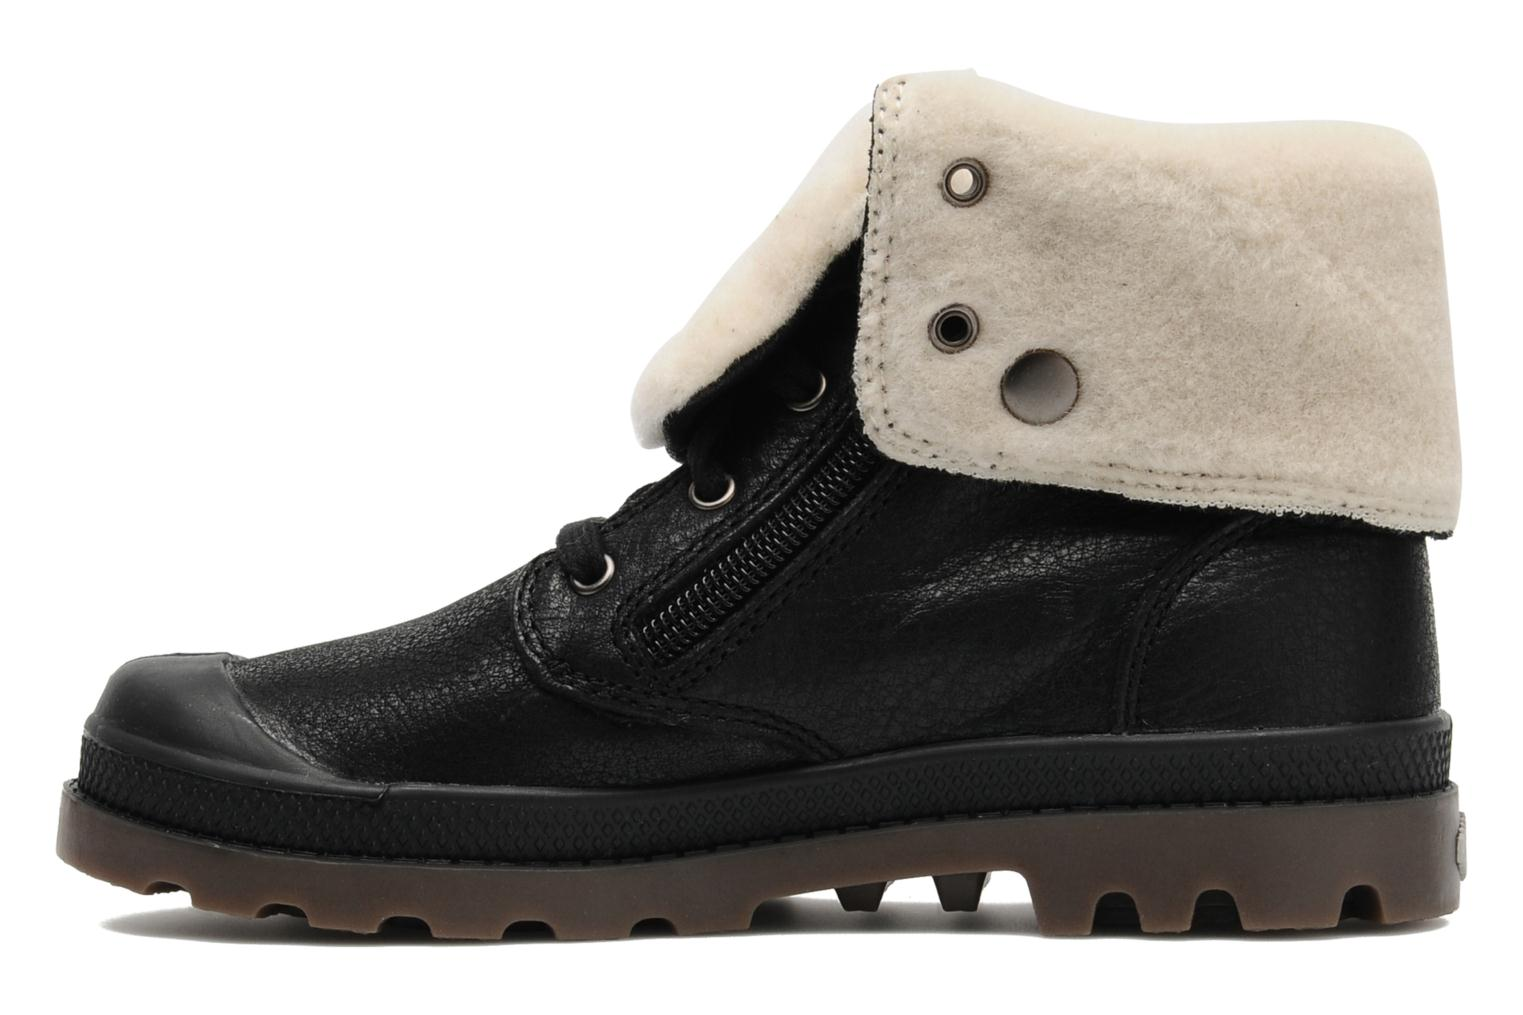 Bottines et boots Palladium Baggy Leather K Noir vue face